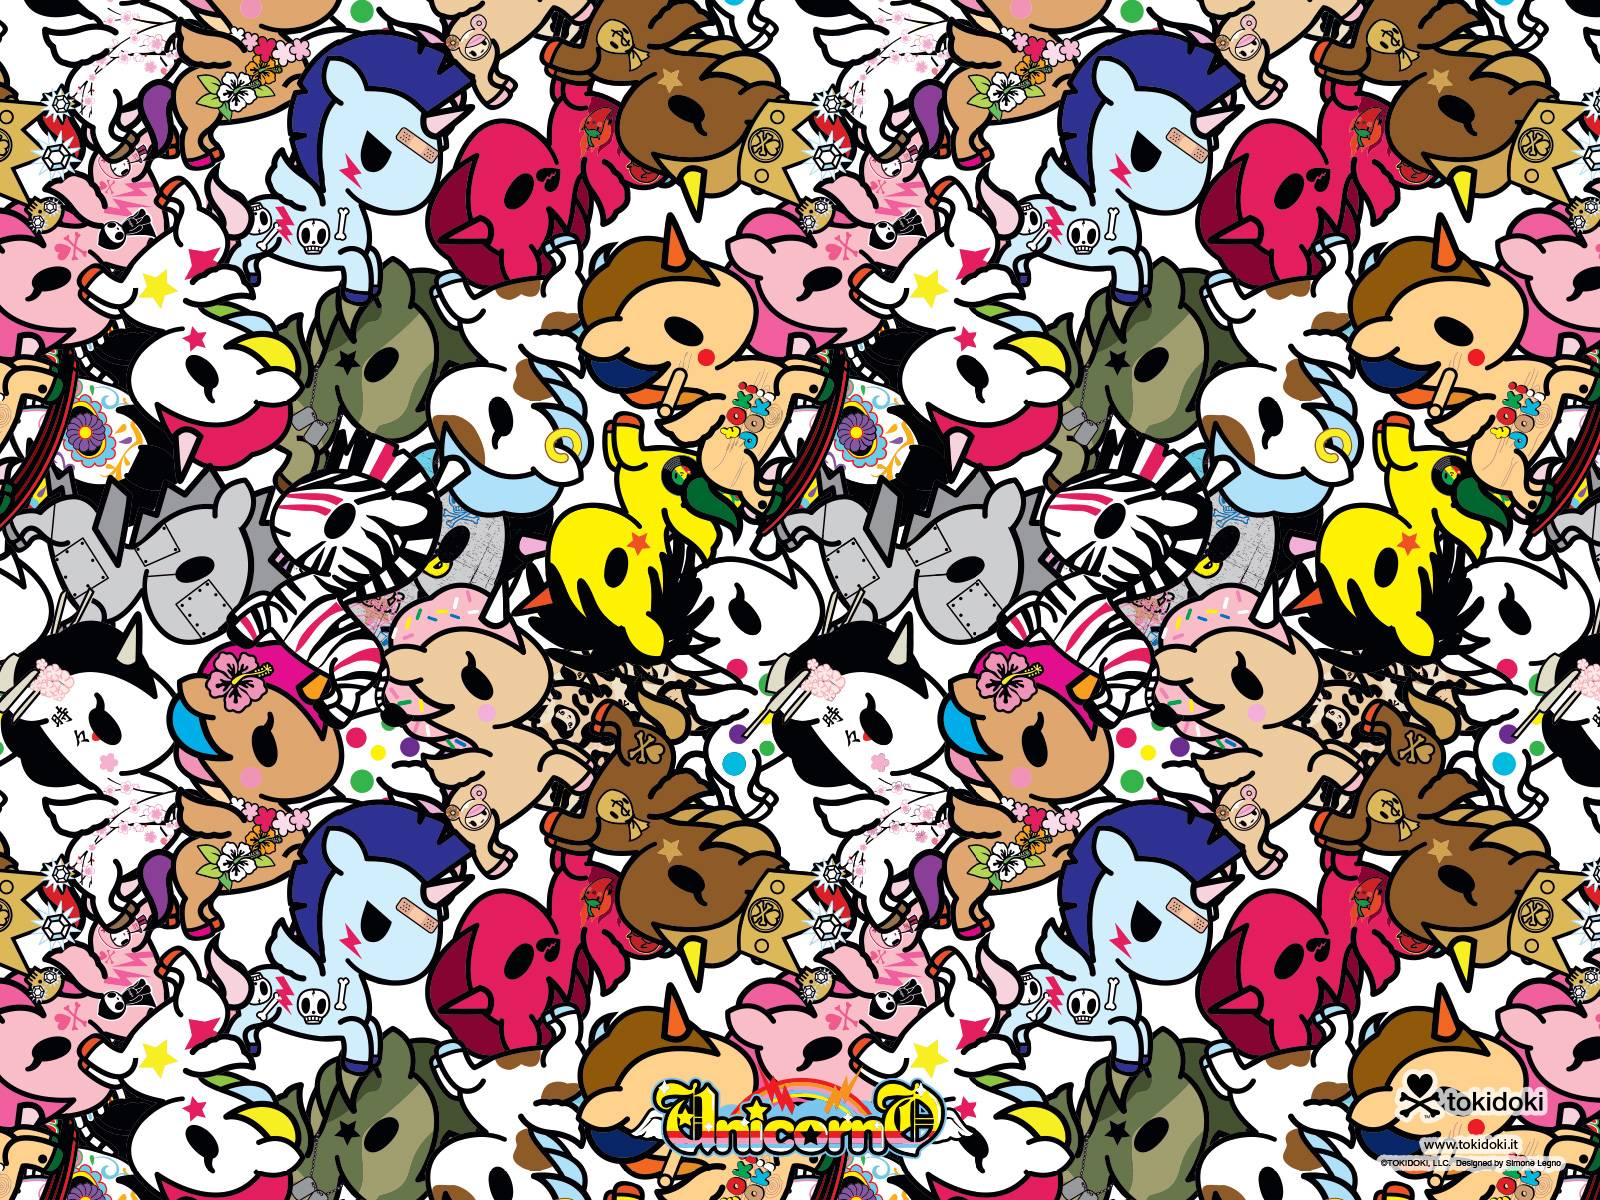 tokidoki wallpapers wallpaper cave